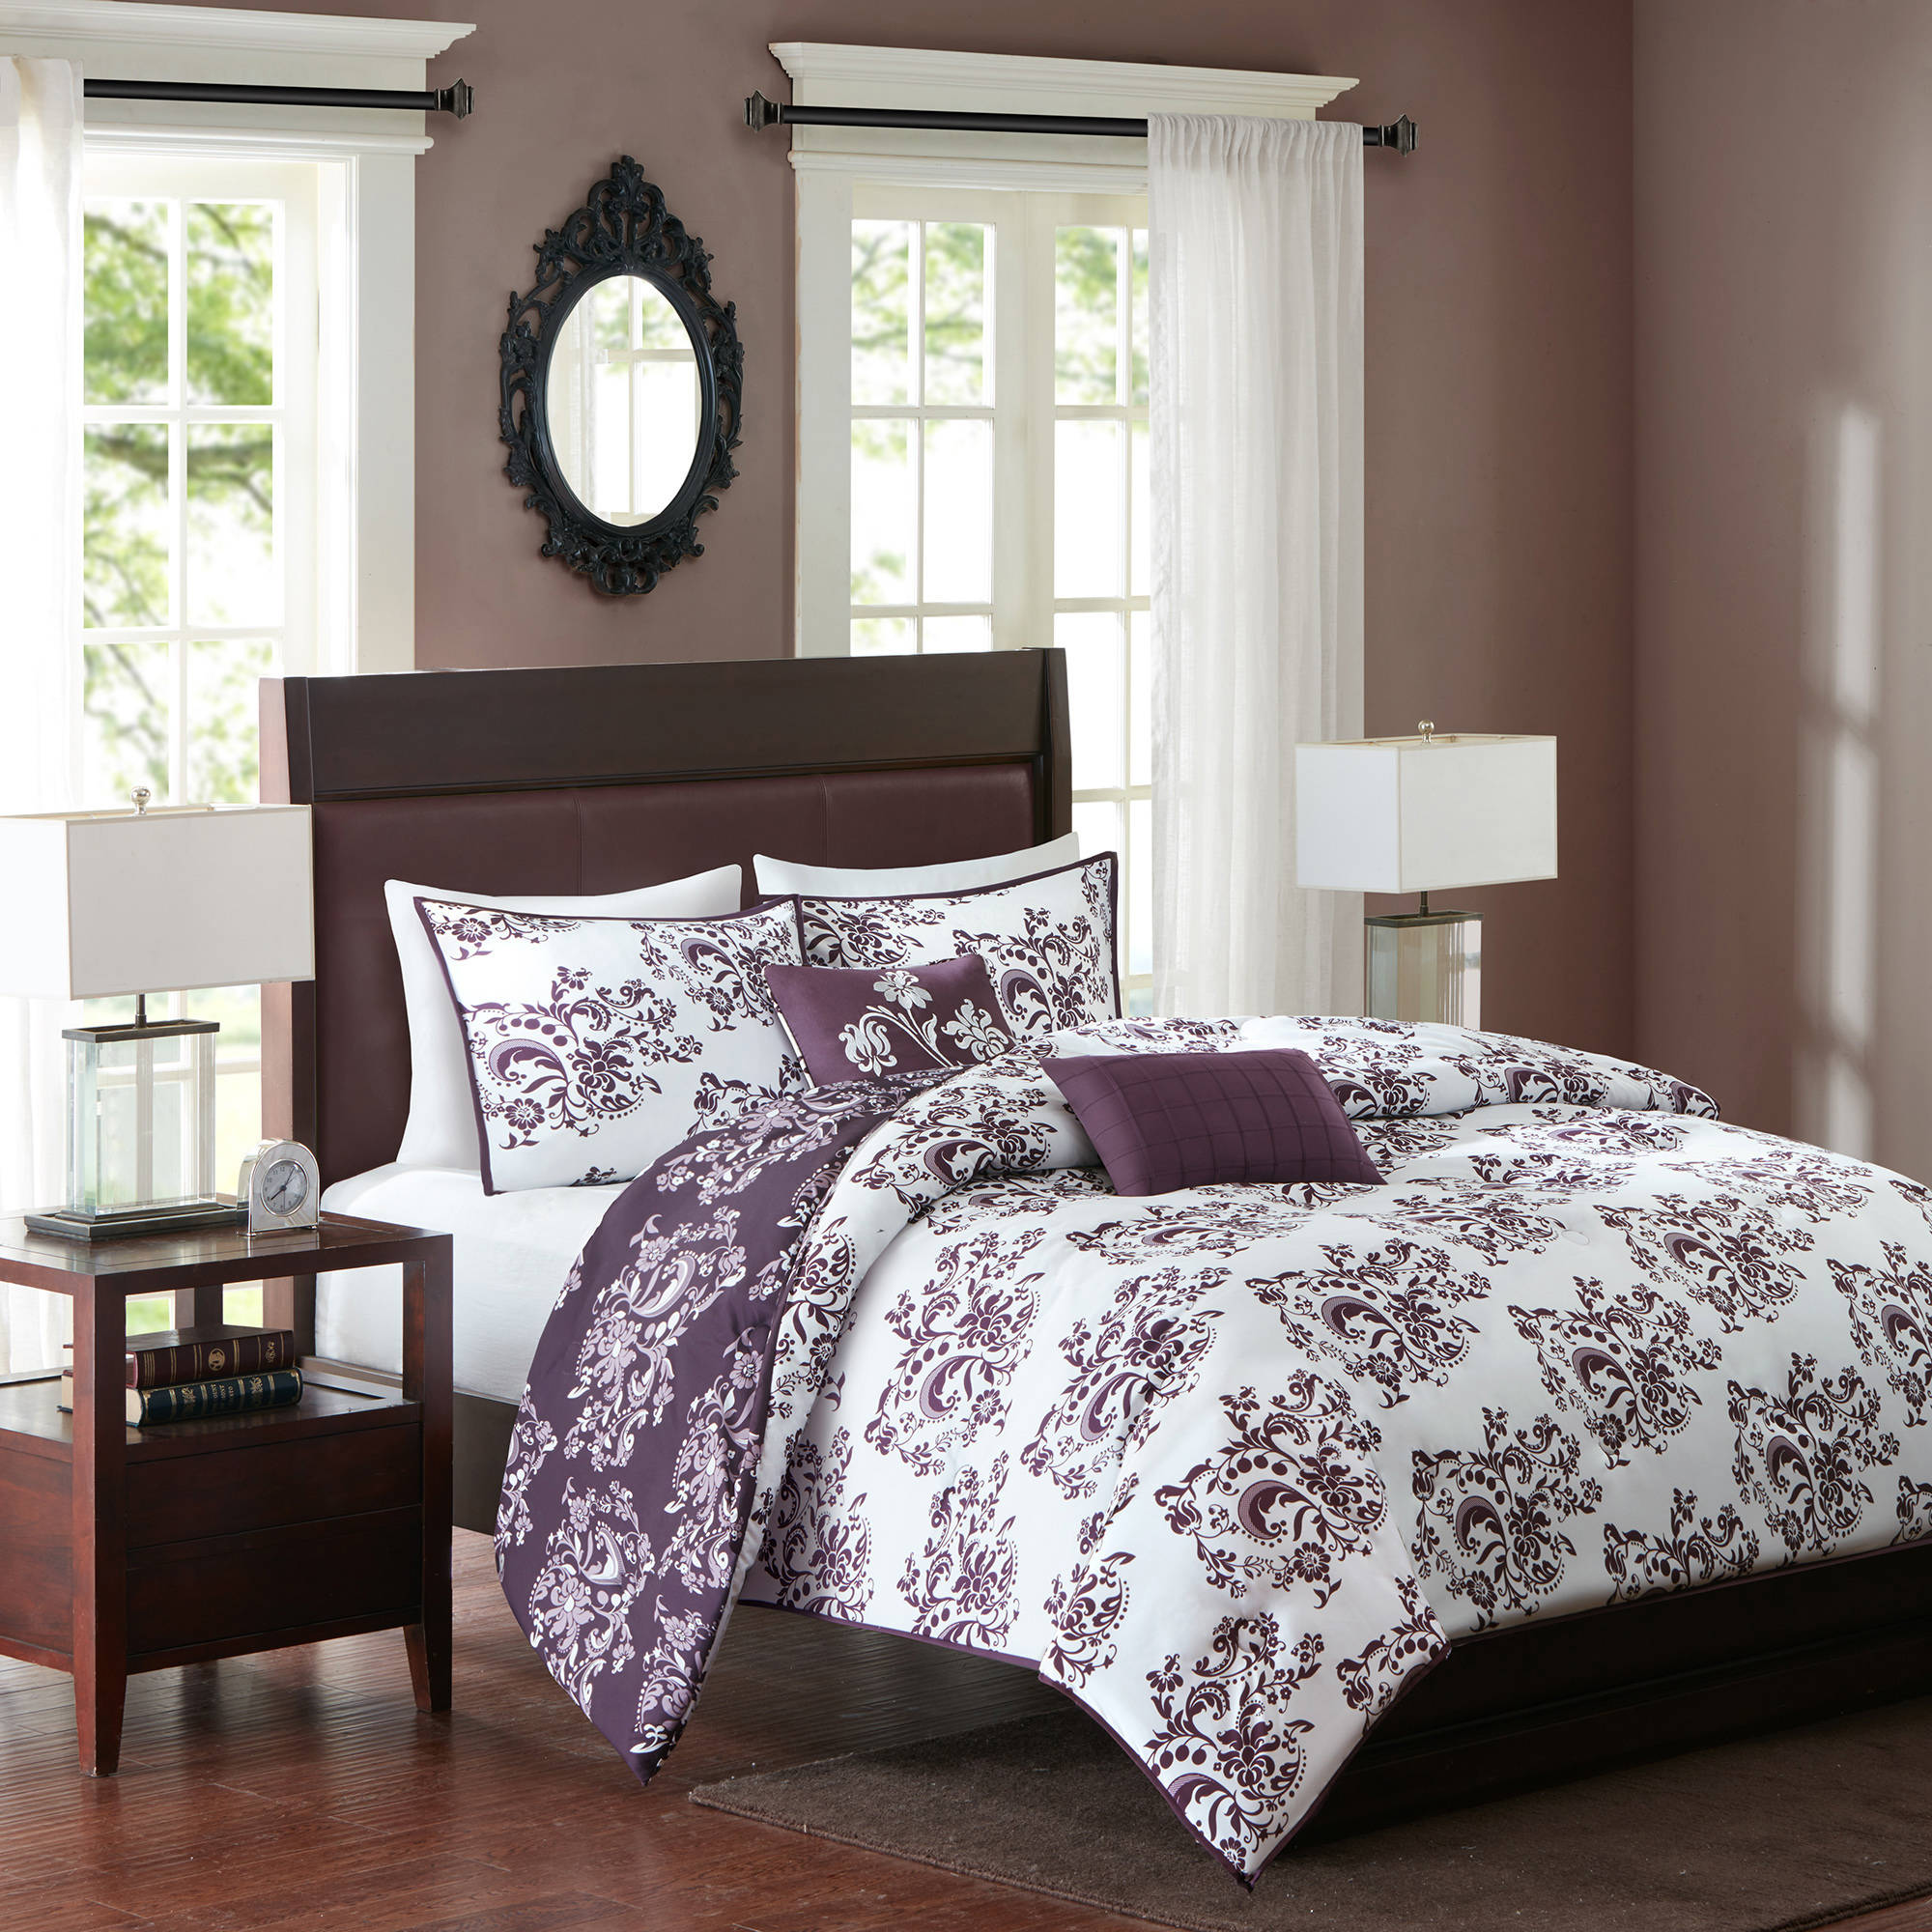 Better Homes and Gardens Amethyst Blooms Comforter Set